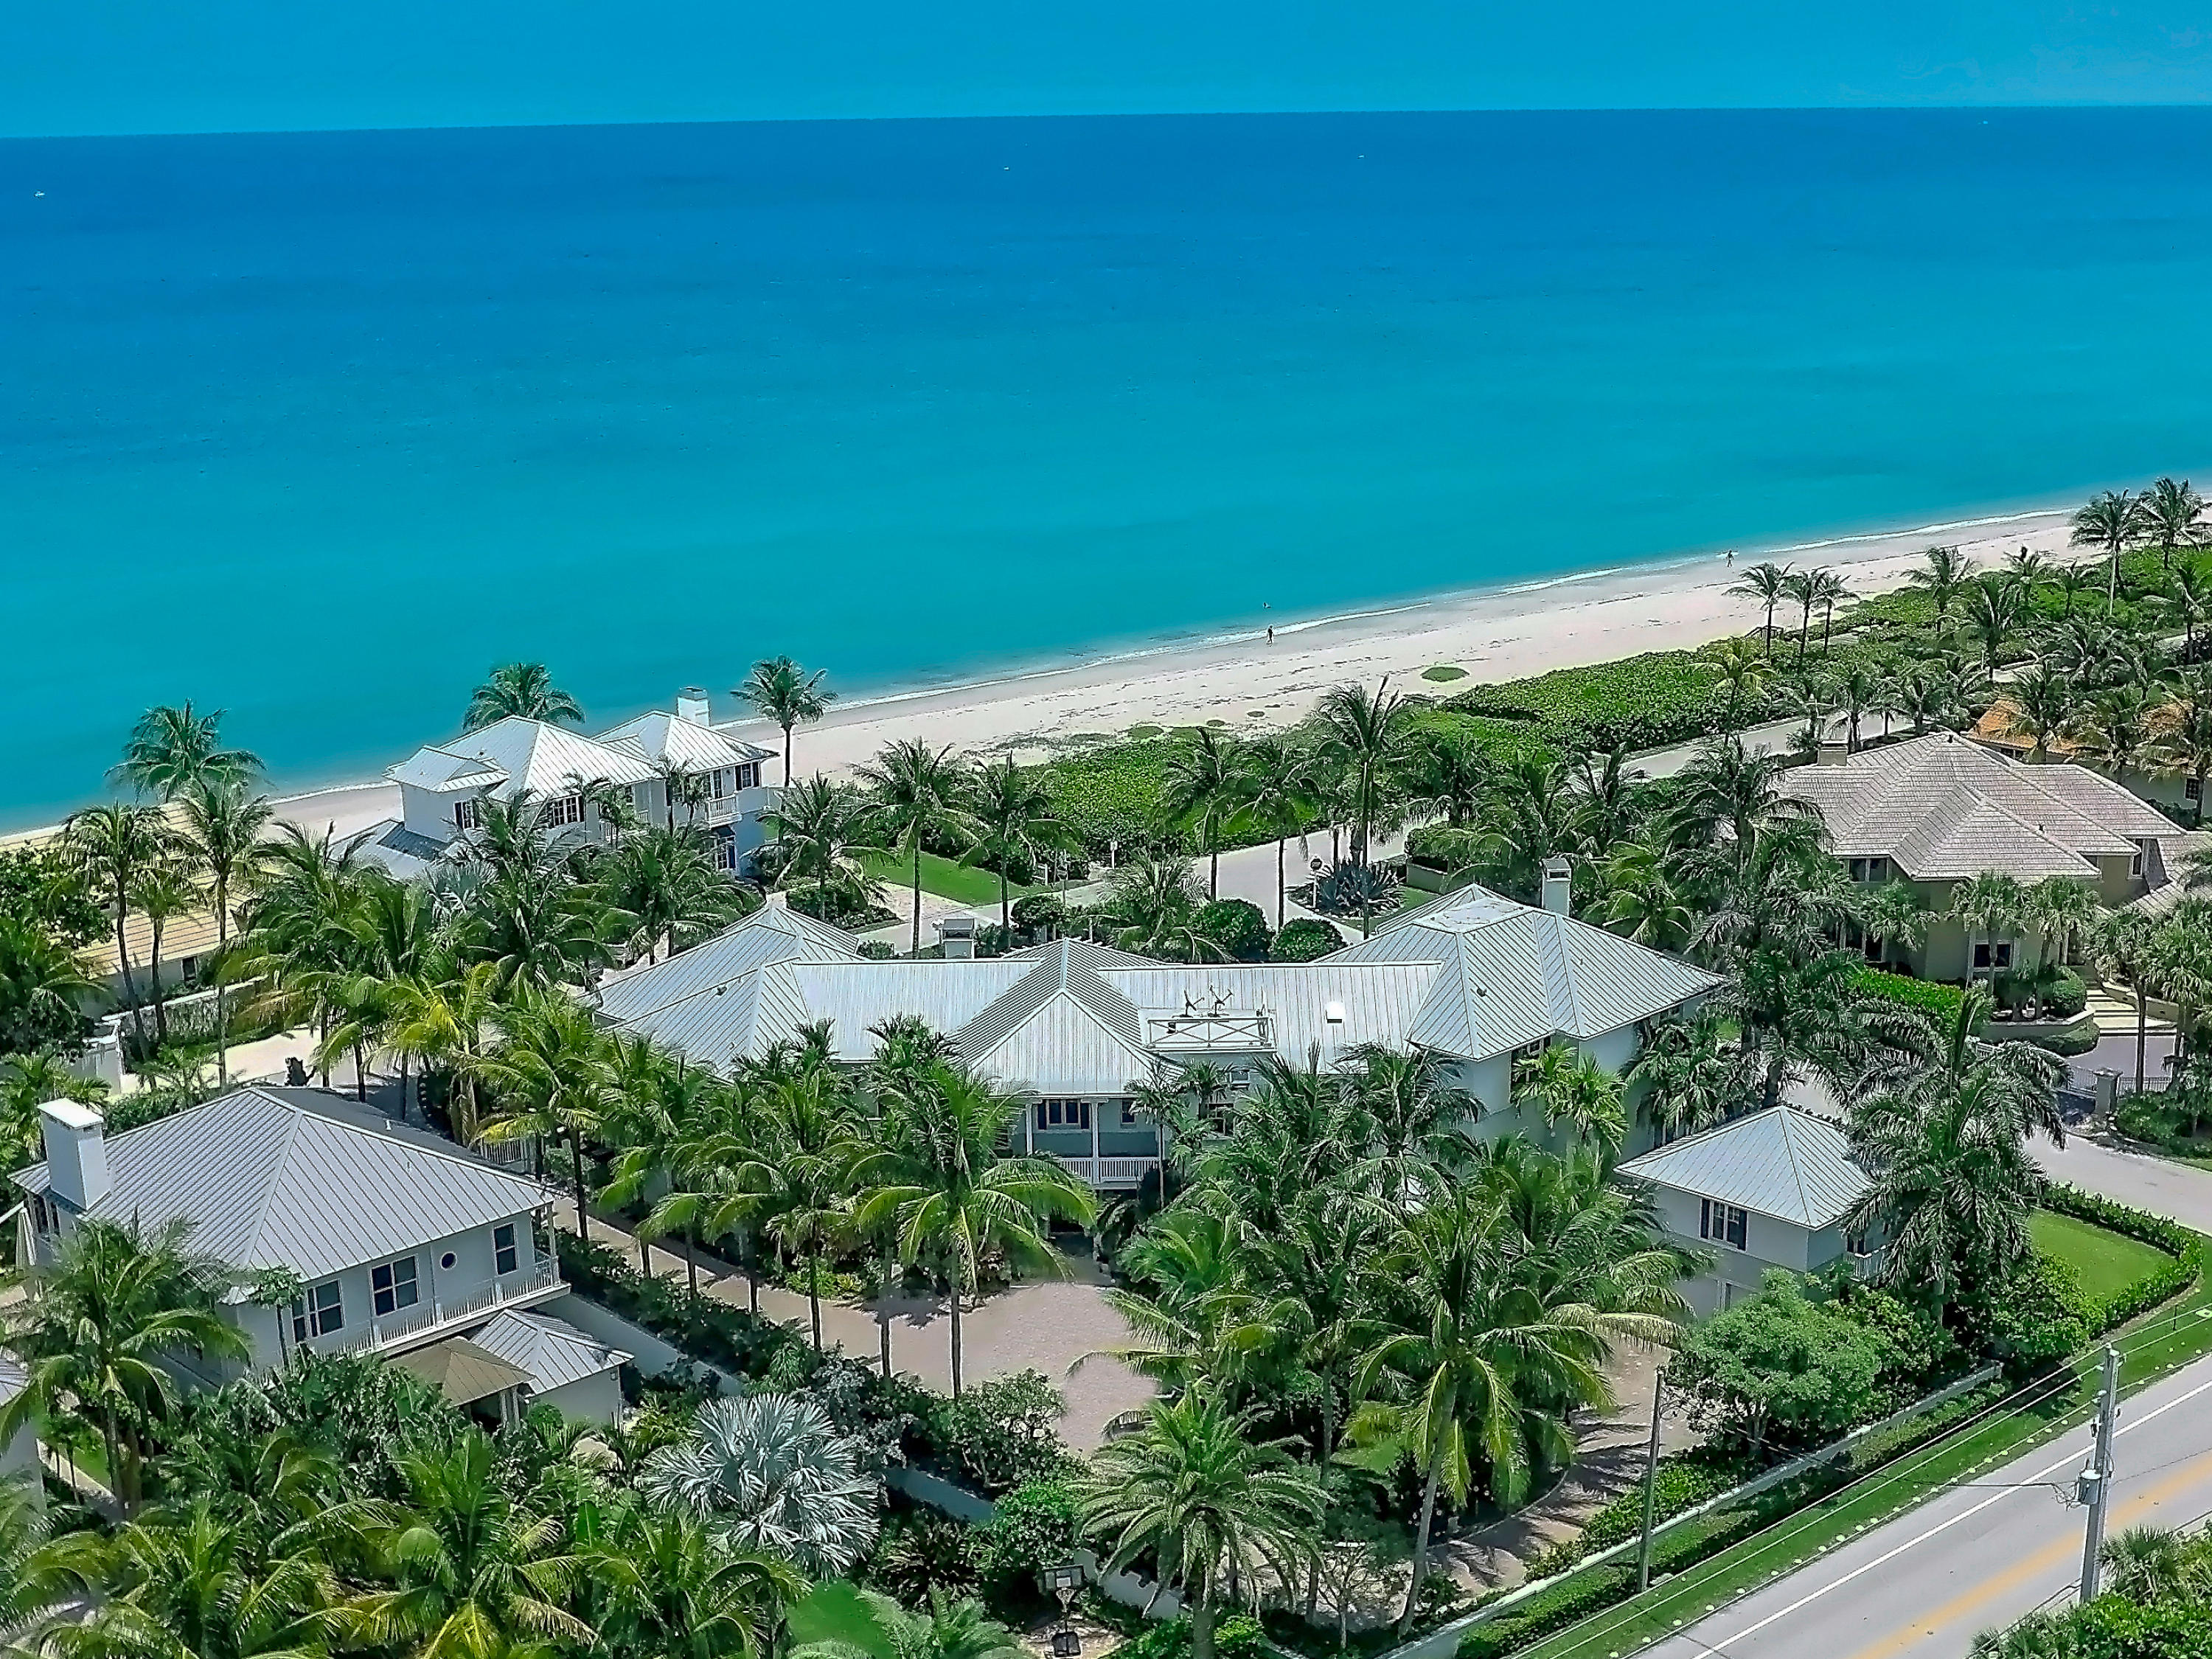 6017 Old Ocean Boulevard, Ocean Ridge, Florida 33435, 6 Bedrooms Bedrooms, ,8.1 BathroomsBathrooms,Single Family,For Sale,Old Ocean,RX-10445211